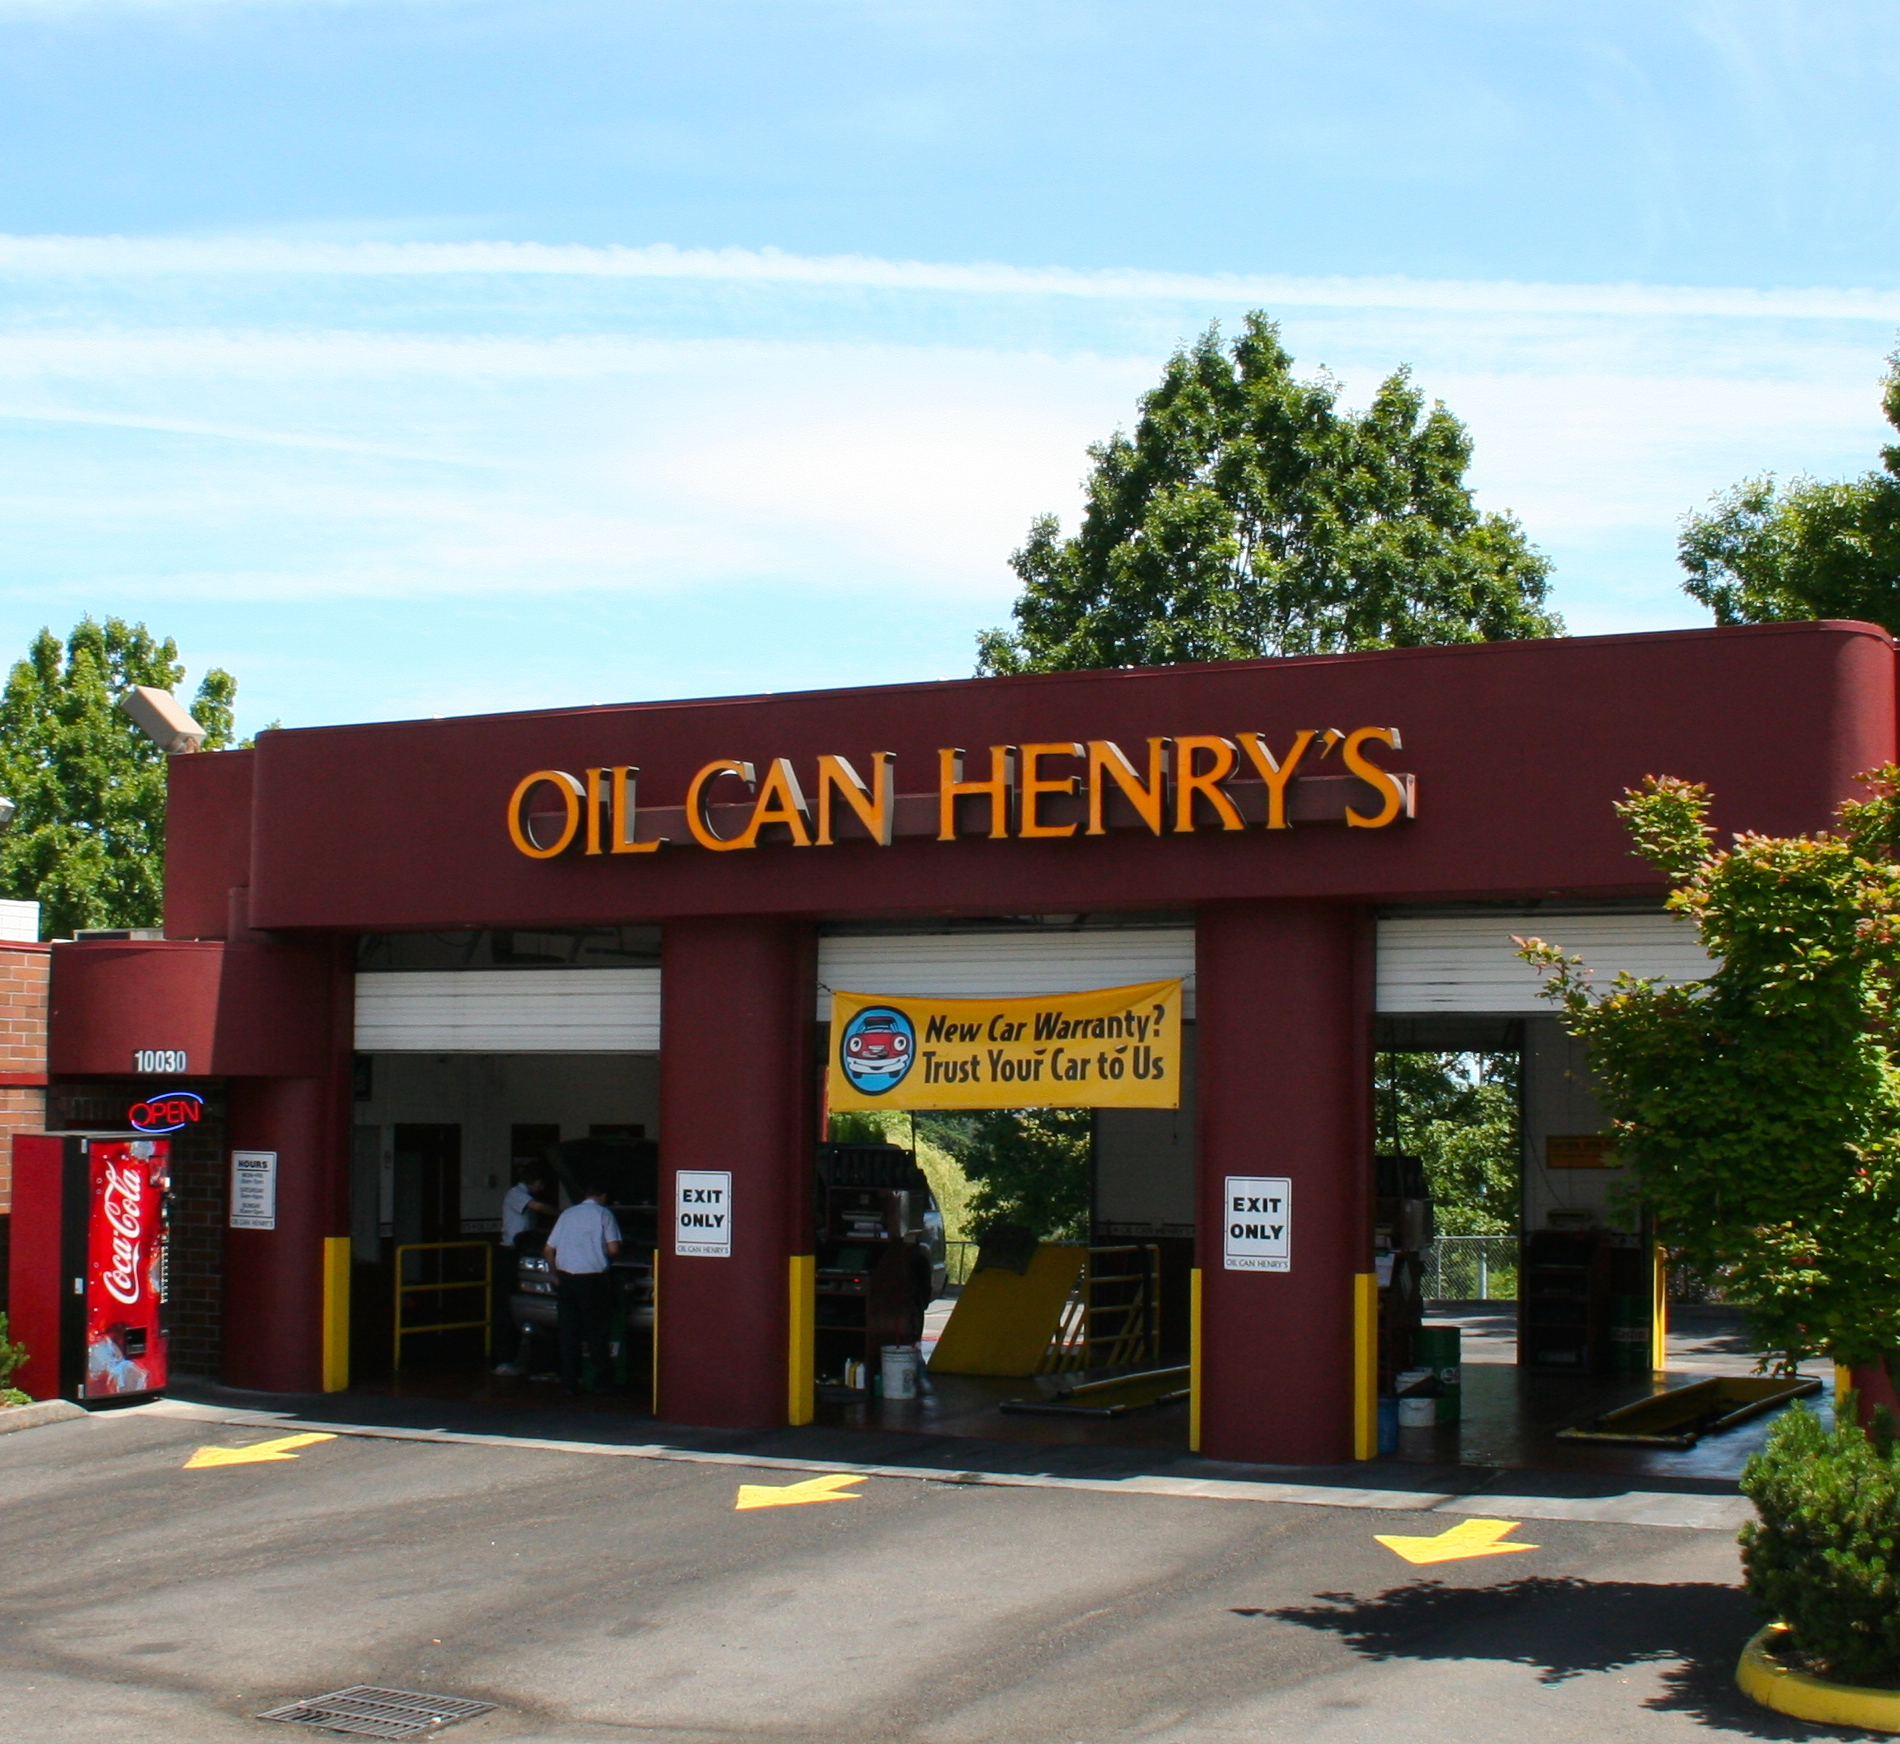 Oil Can Henry's serves drivers in Arizona, California, Colorado, Idaho, Oregon, and Washington. Find an Oil Can Henry's location near you, then drive on in. You never need an appointment for our quick, convenient and thorough service. Arizona.